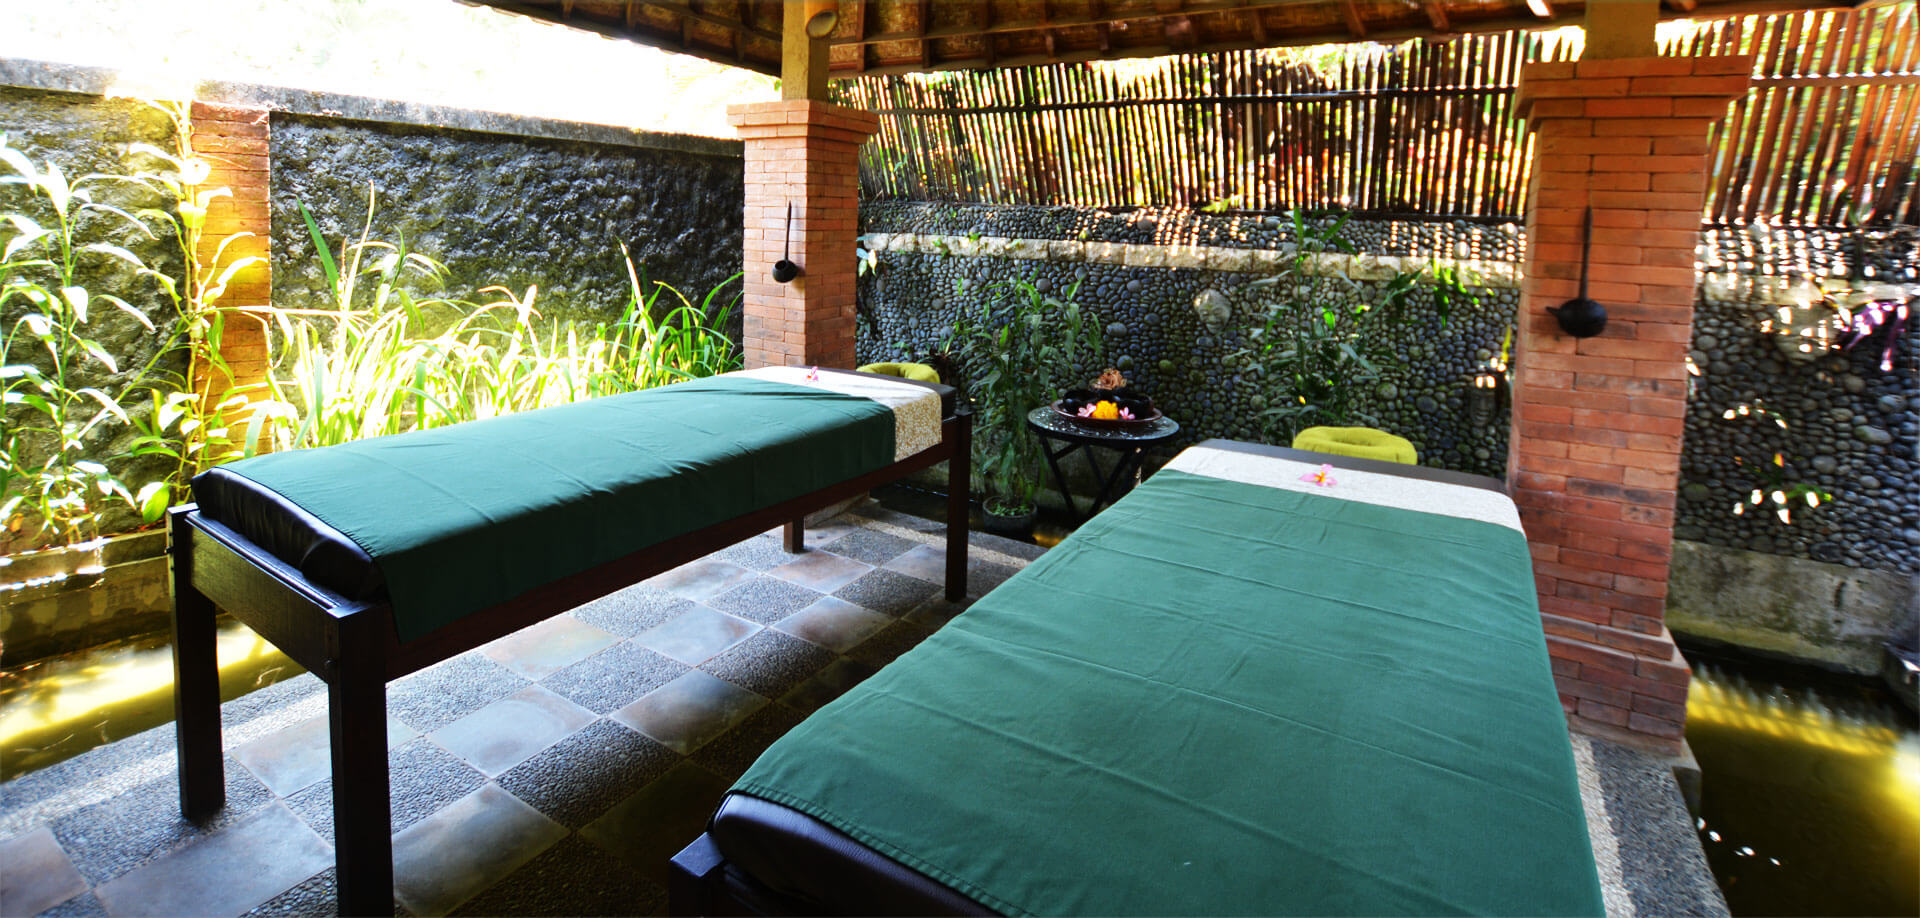 Puri Asri Spa at Puri Asri Villa